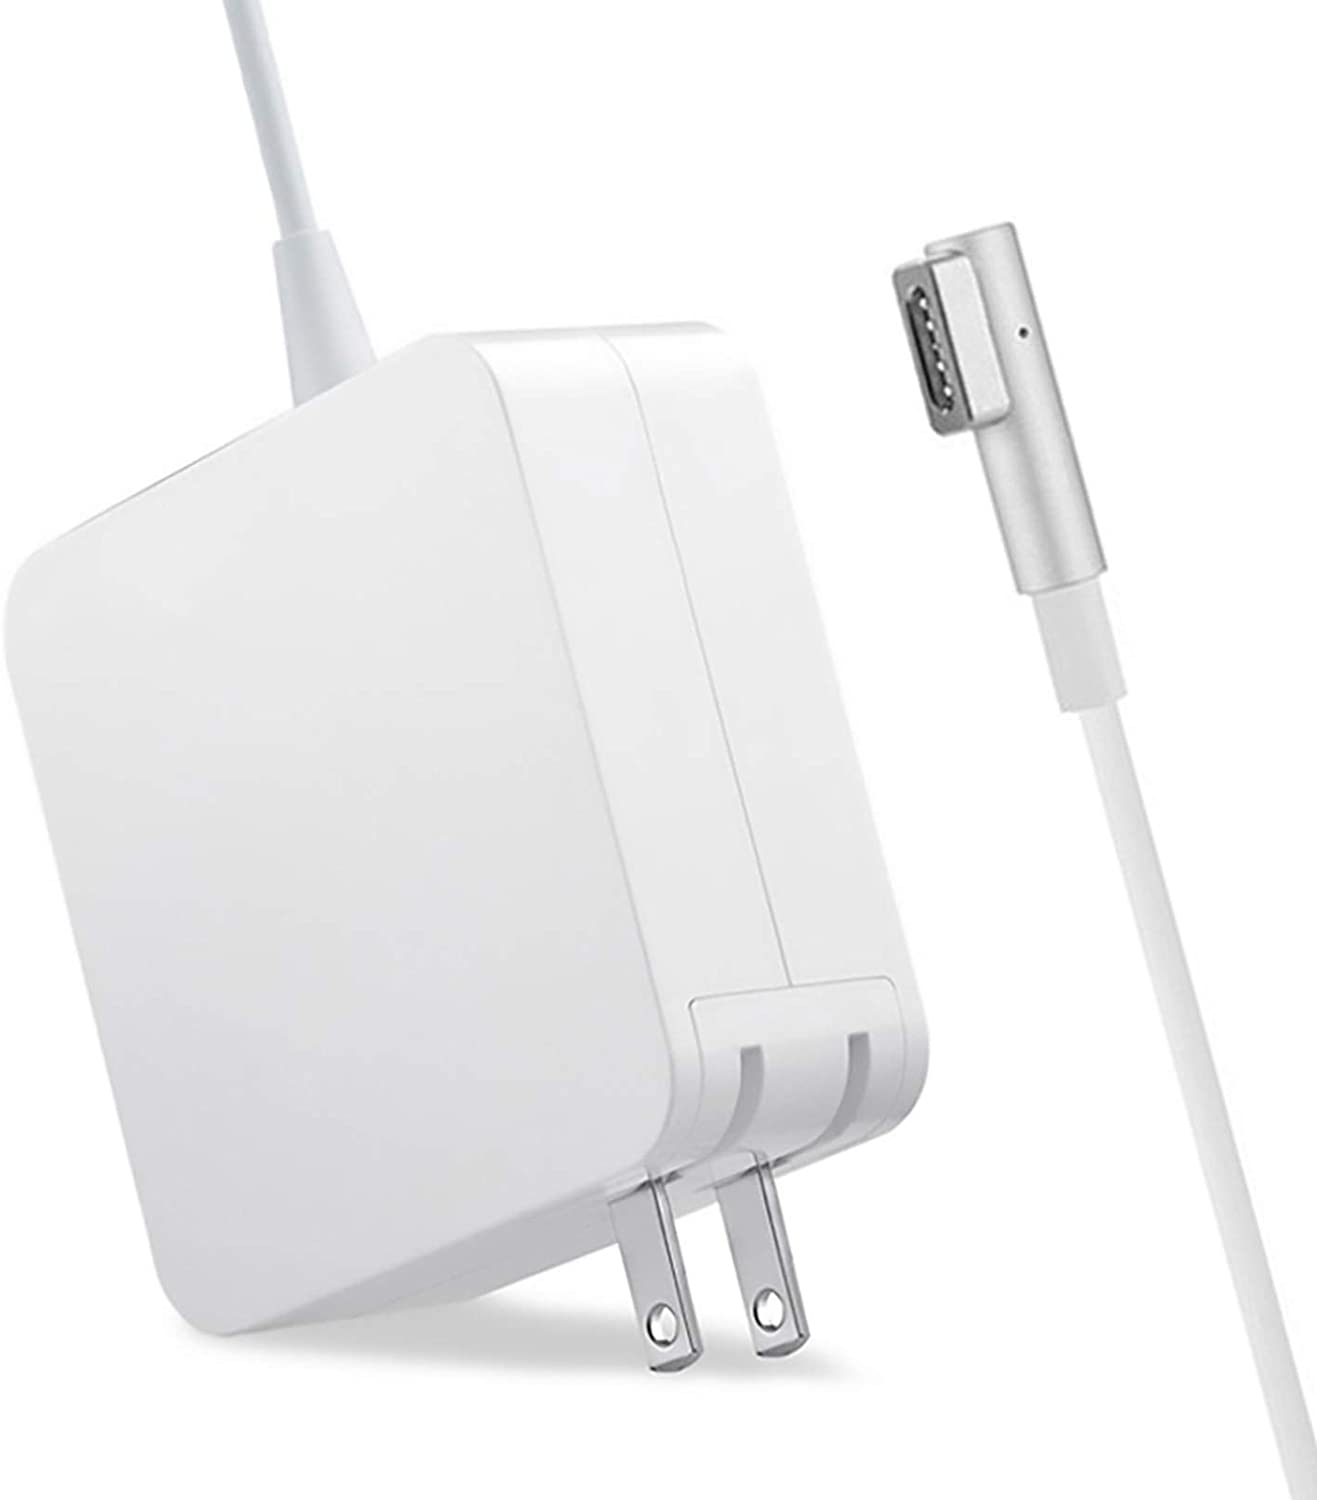 Compatible with MacBook Pro Charger, 85W 1 L-Tip Power Adapter Charger Replacement Cord for Mac Book Pro 13 15 and 17 inch Connector (Compatible with Models Before Mid 2012)